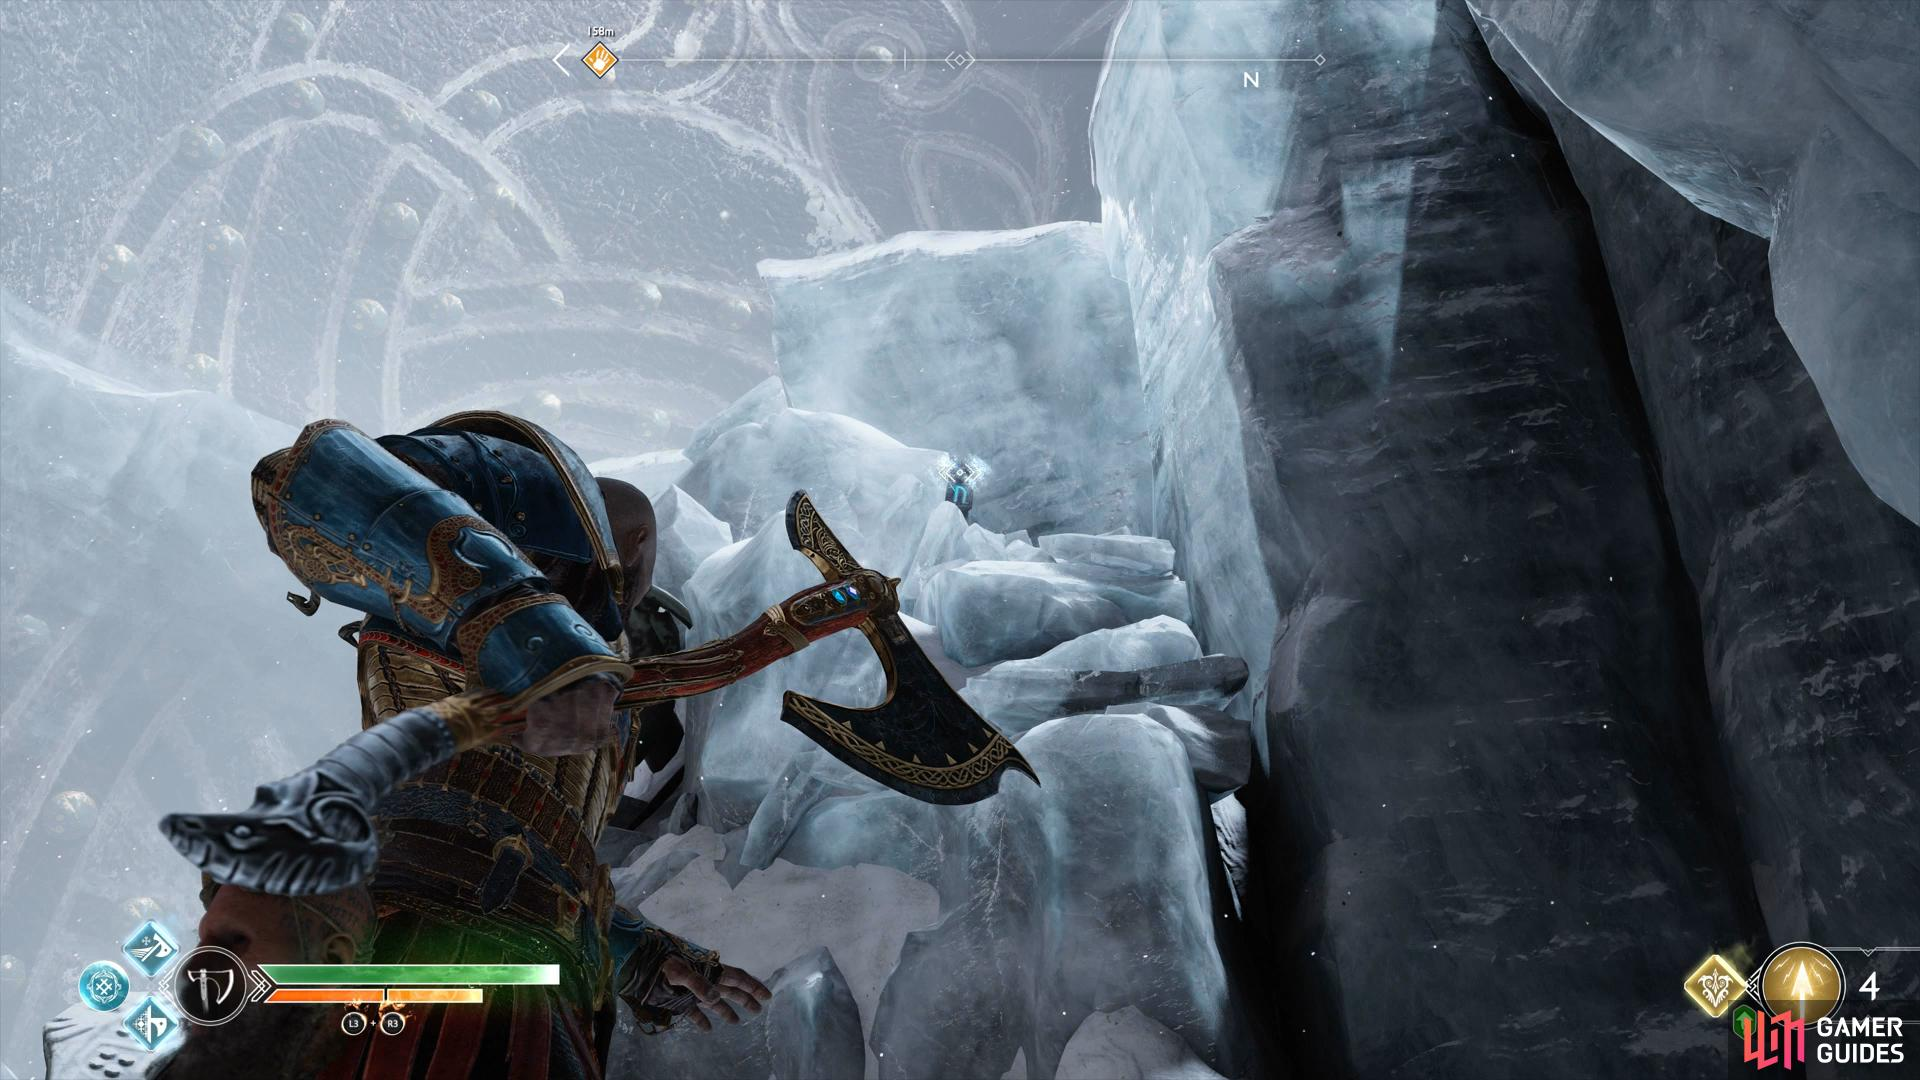 drop down to a second platform and look on top of the blocks of ice for the final rune.